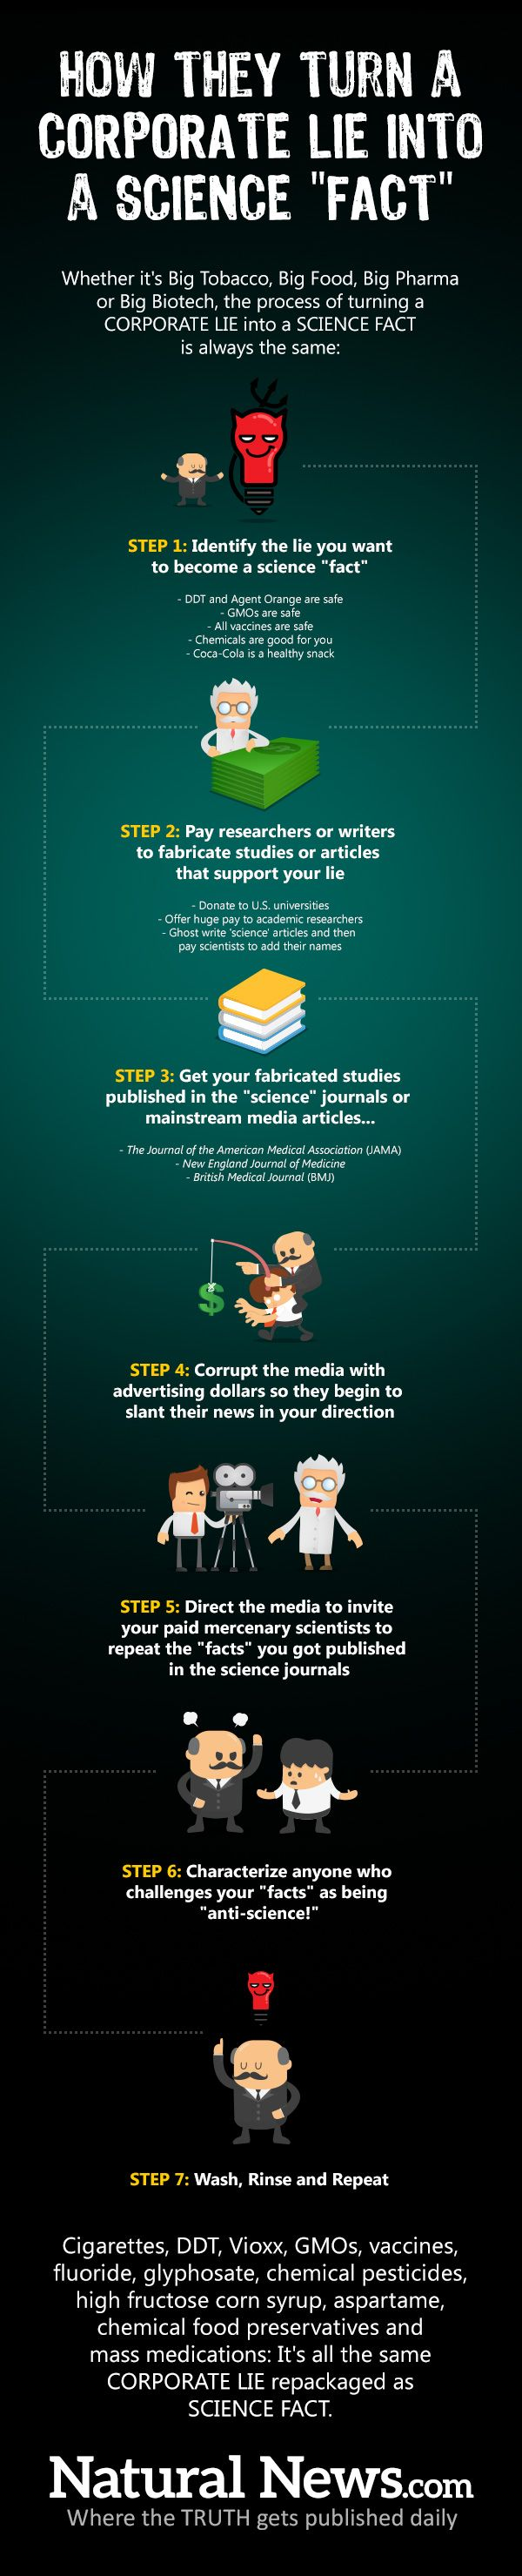 "Infographic: How to transform a corporate lie into a science ""fact"" - TELECOM http://www.naturalnews.com/049068_corporate_lies_science_facts_infographic.html AND http://papers.ssrn.com/sol3/papers.cfm?abstract_id=2294620"